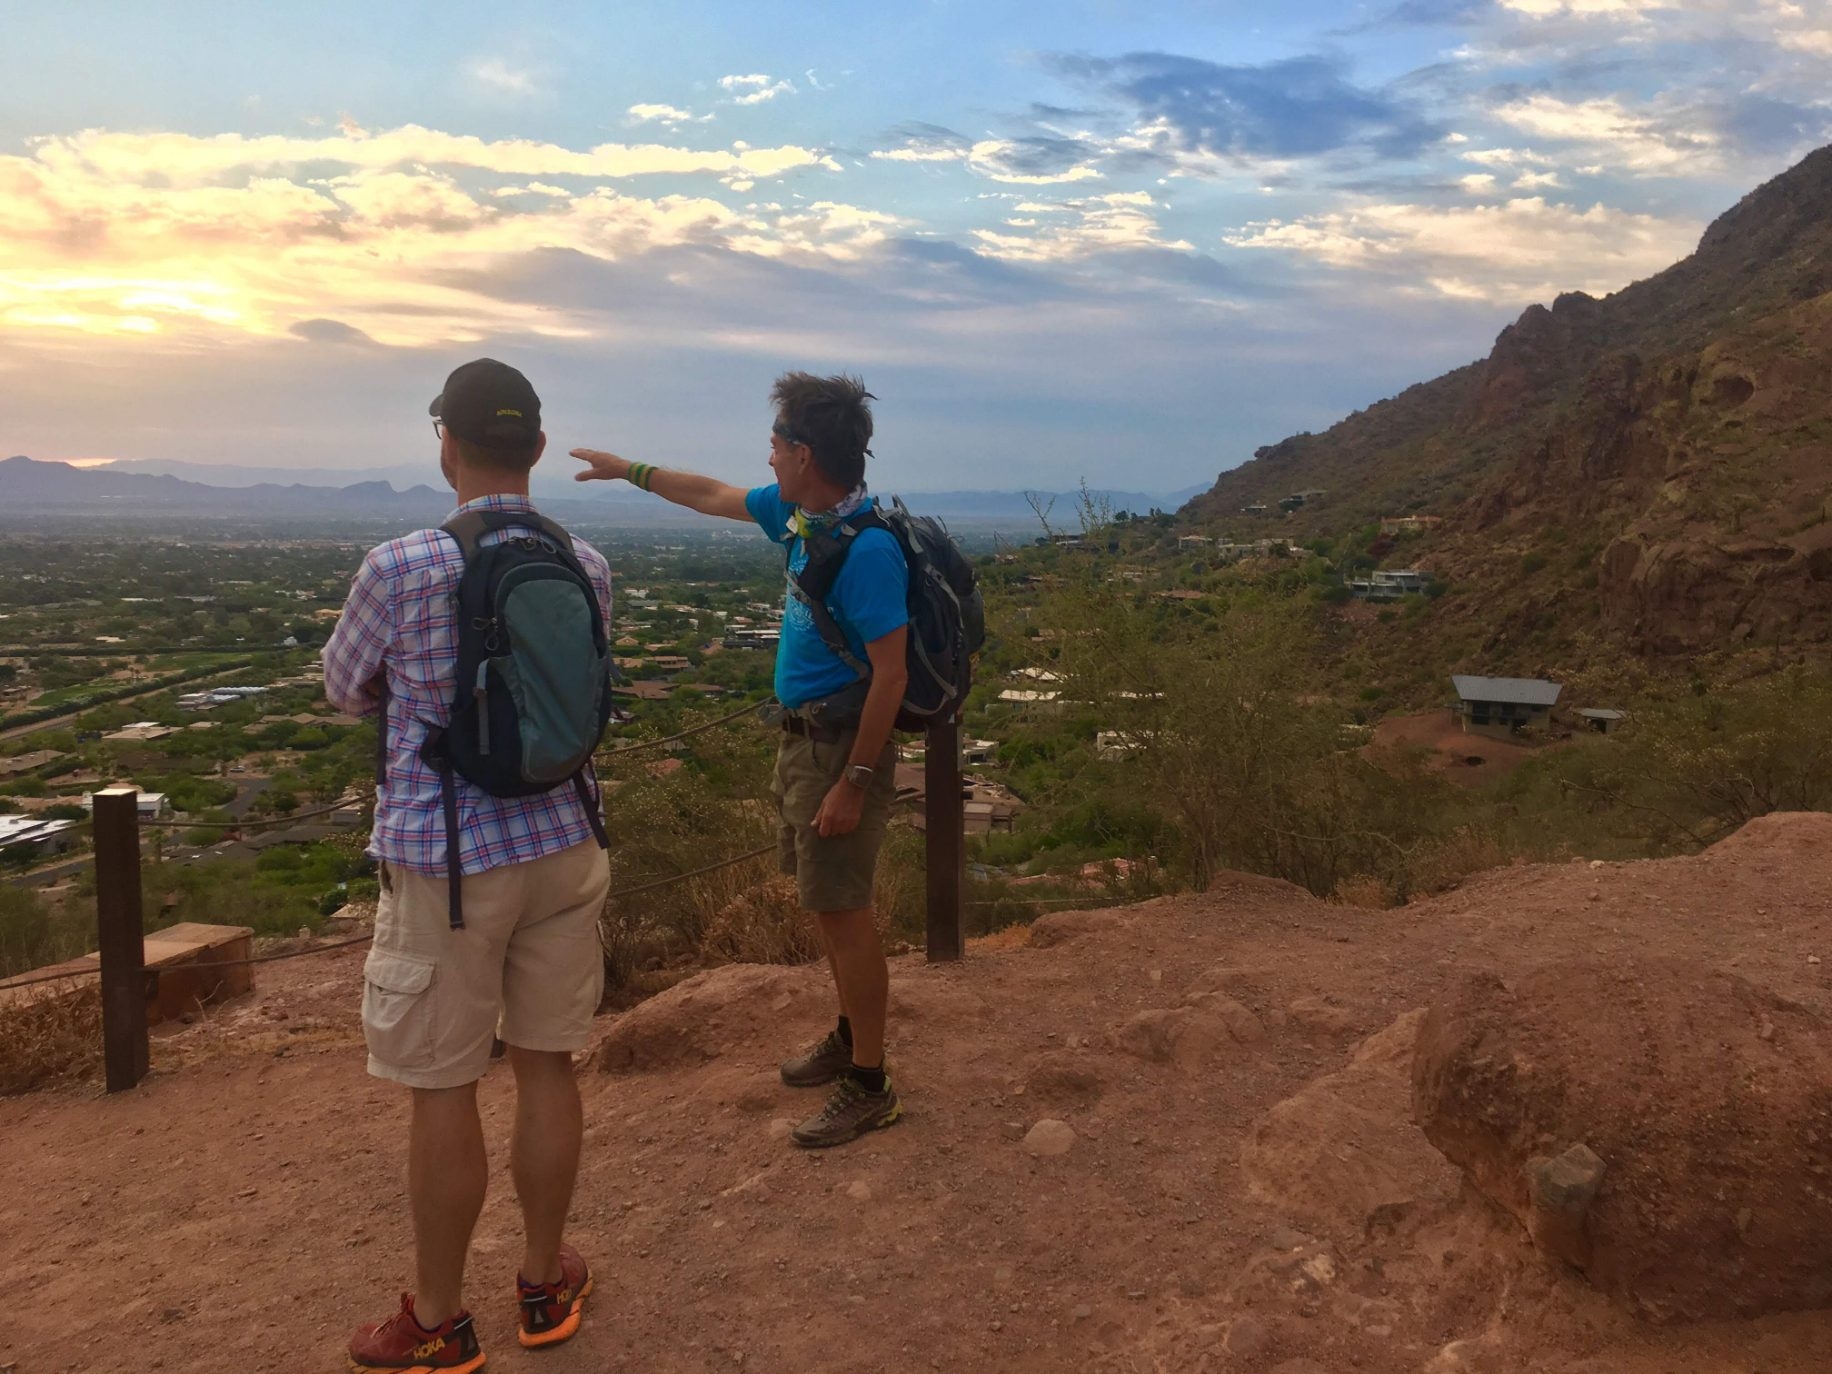 A guide points out several landmarks to a guest while they enjoy the amazing vistas together during a Wild Bunch Desert Guides adventure tour.